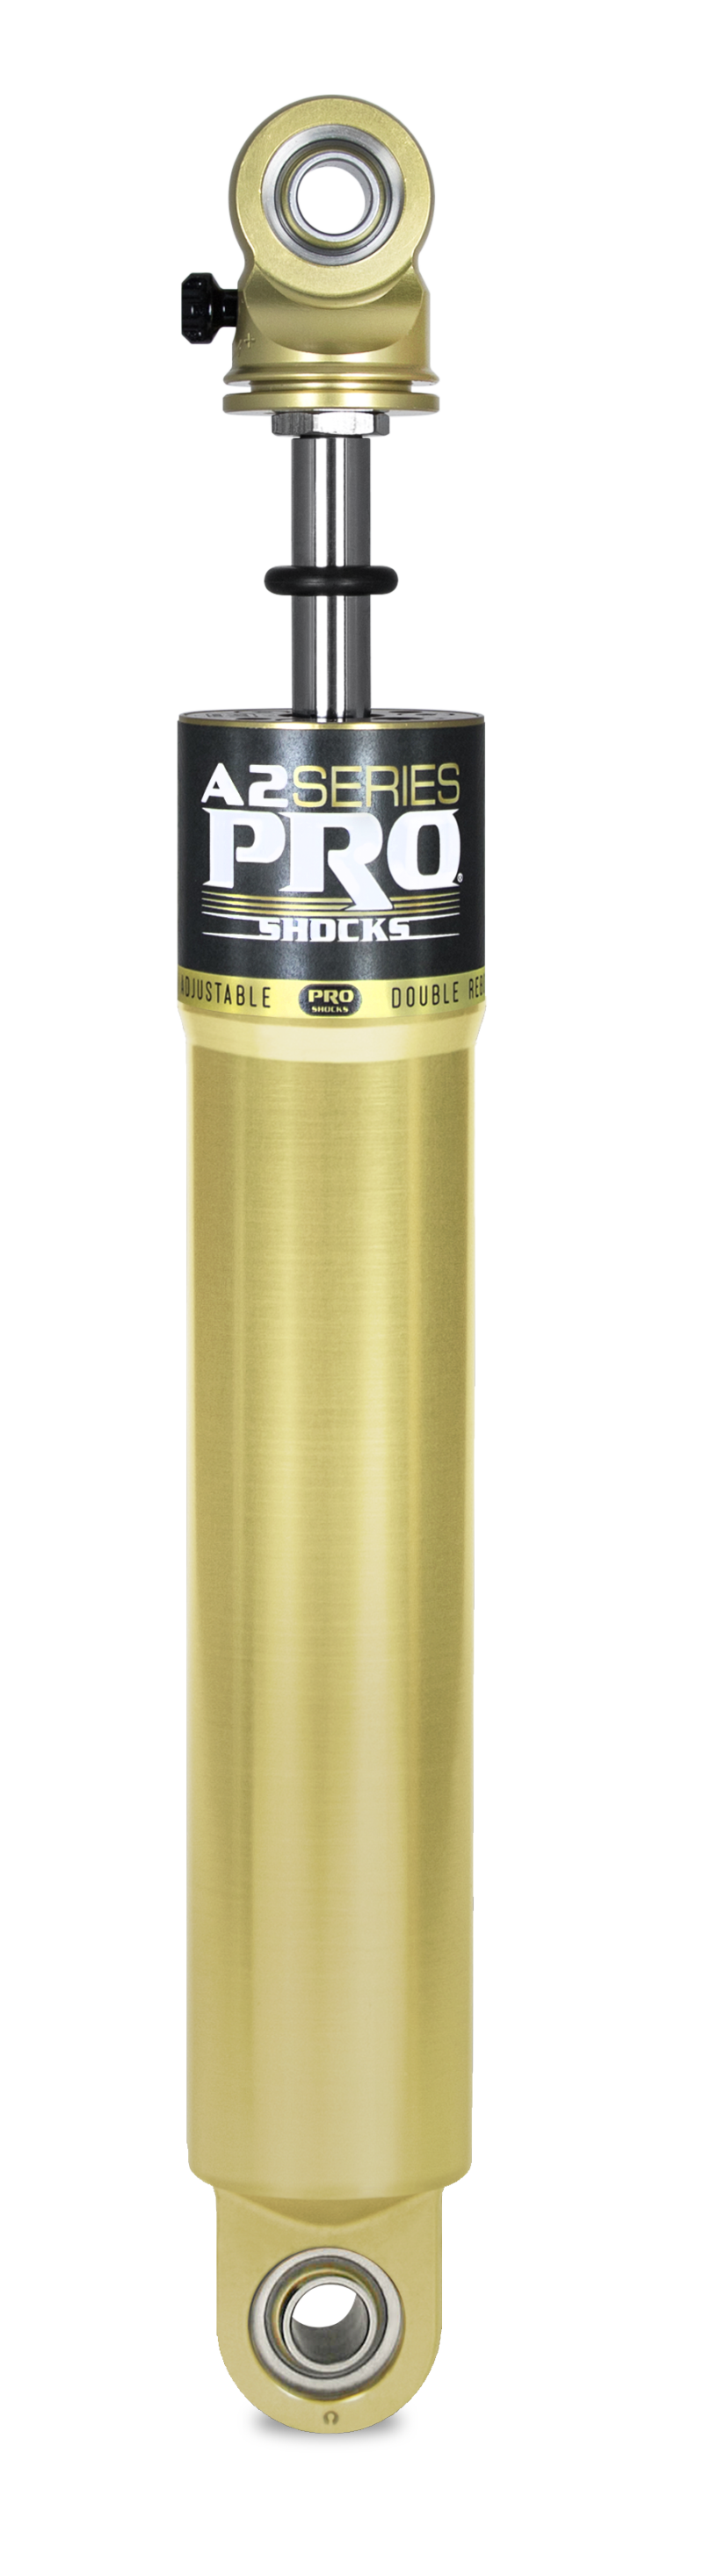 A2 Series Double Adjustable Shock